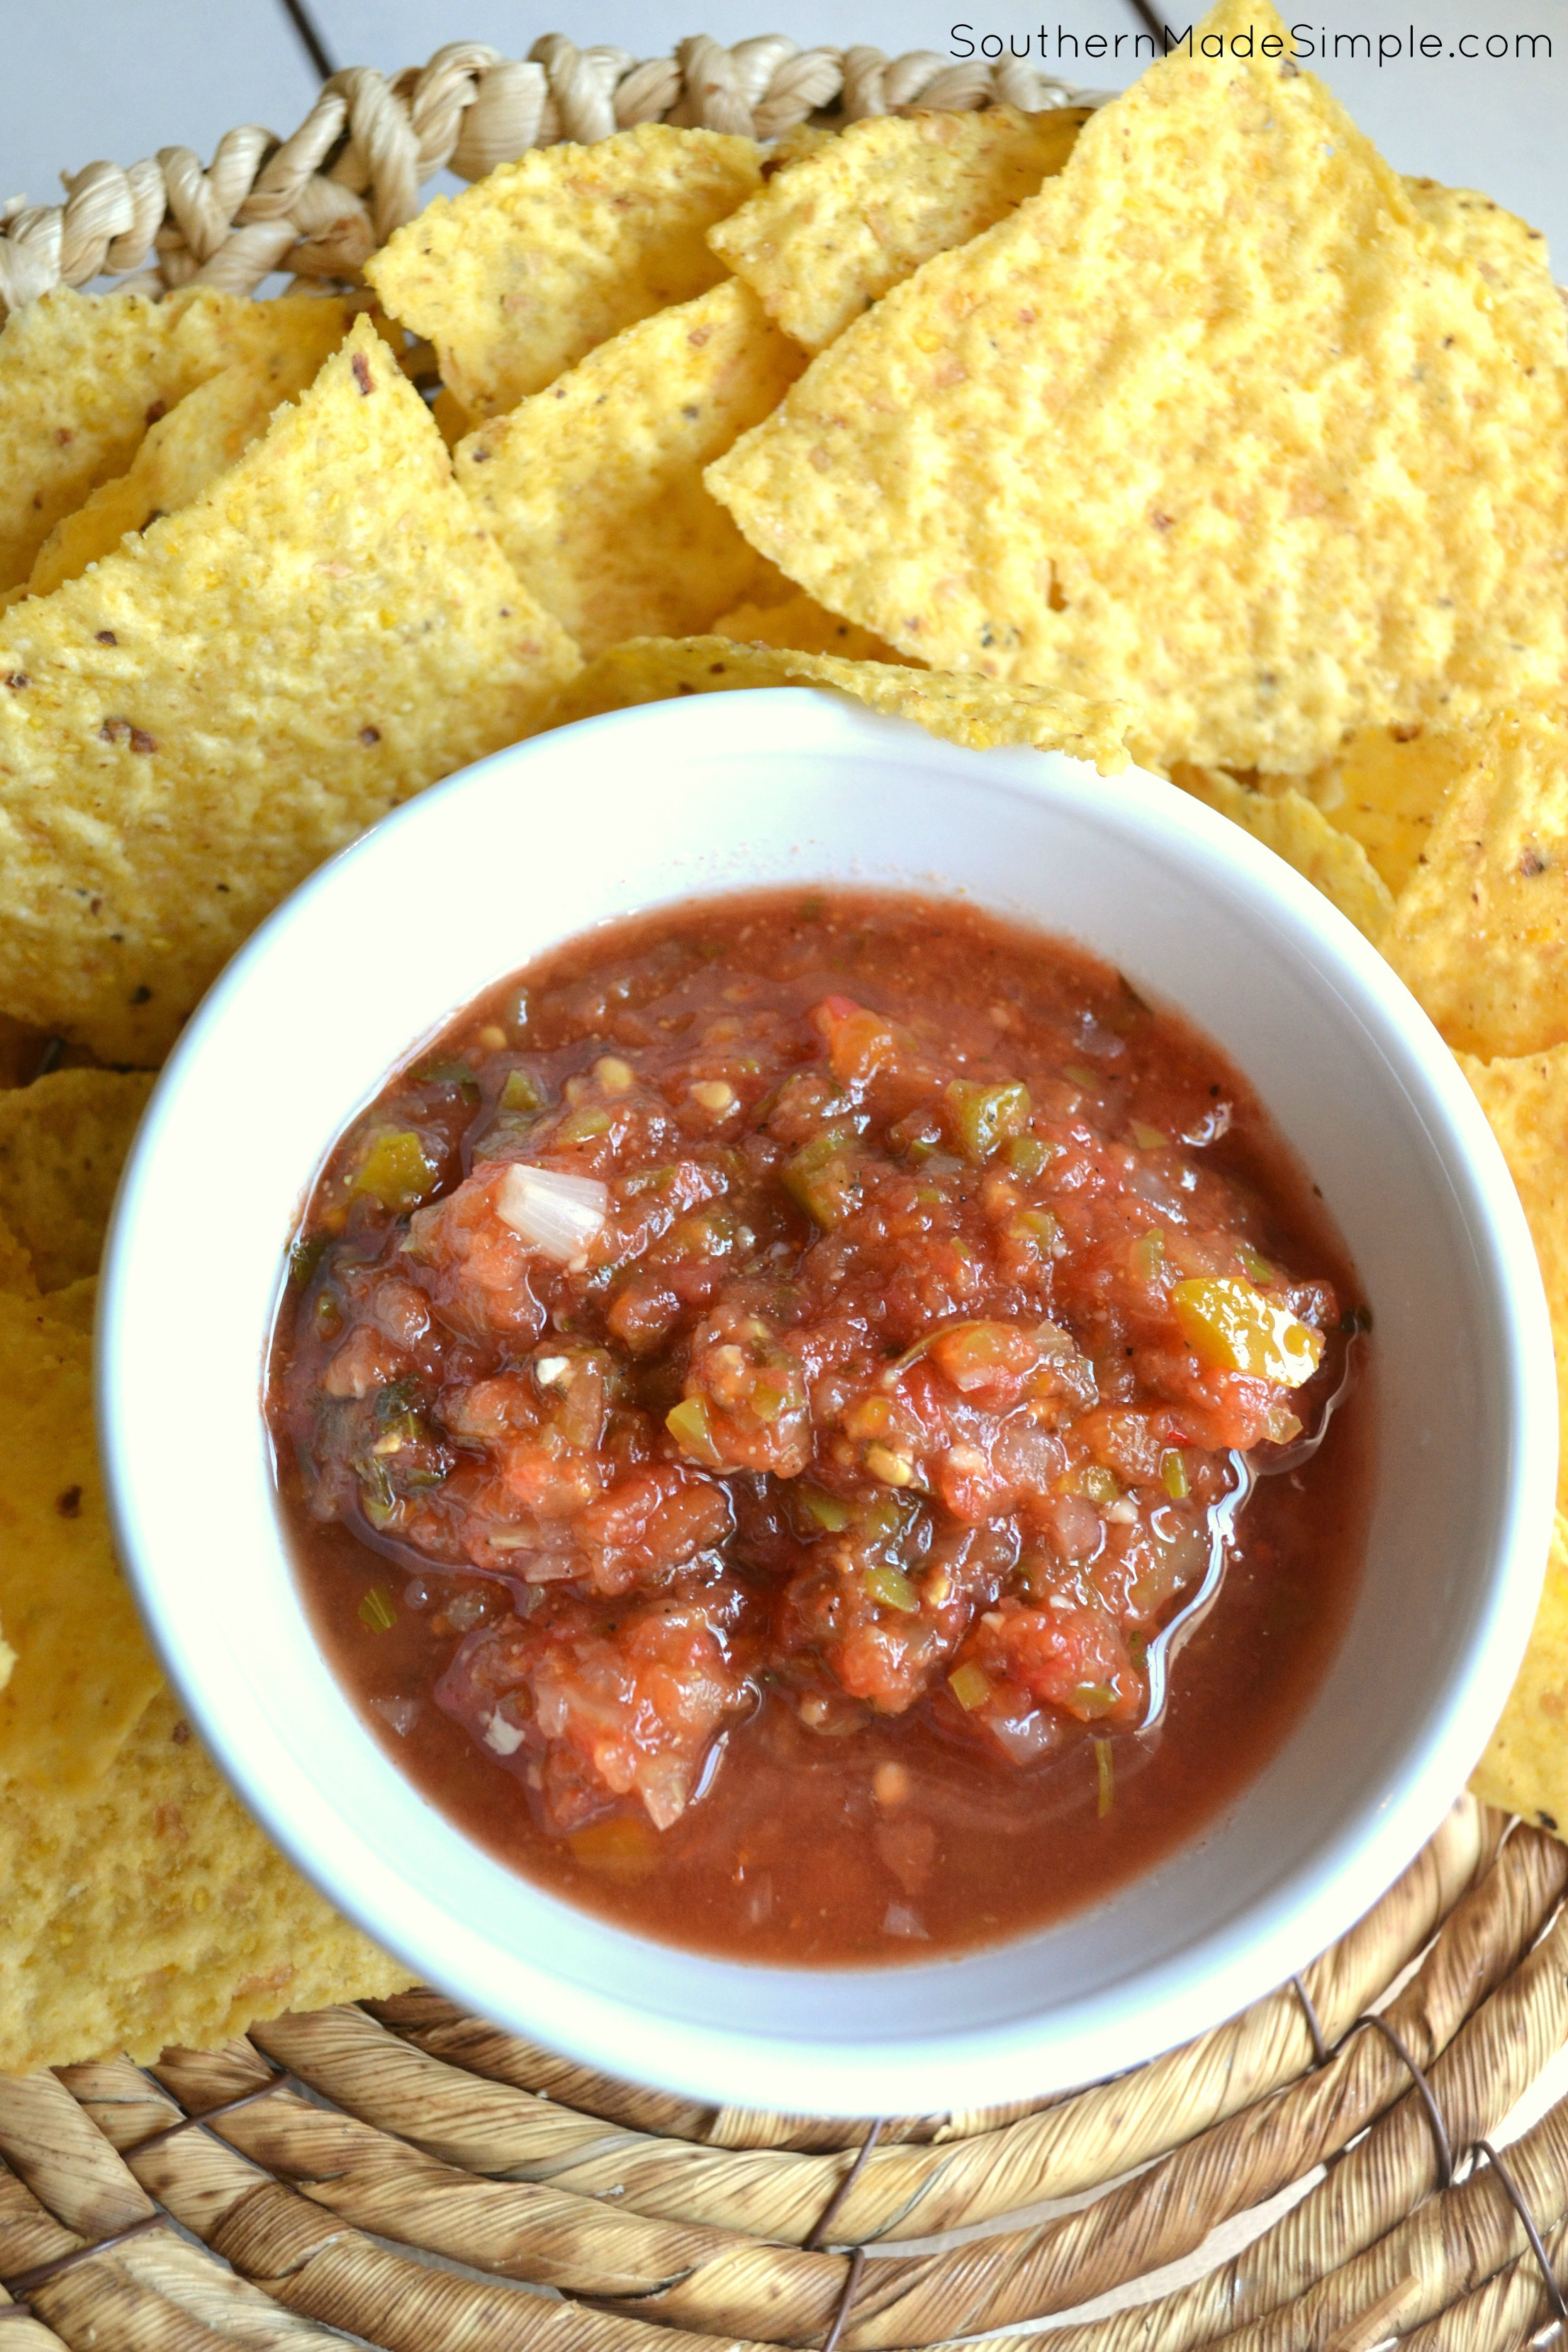 This salsa recipe is the BEST! I made a large batch and it was gone before the weekend was over!